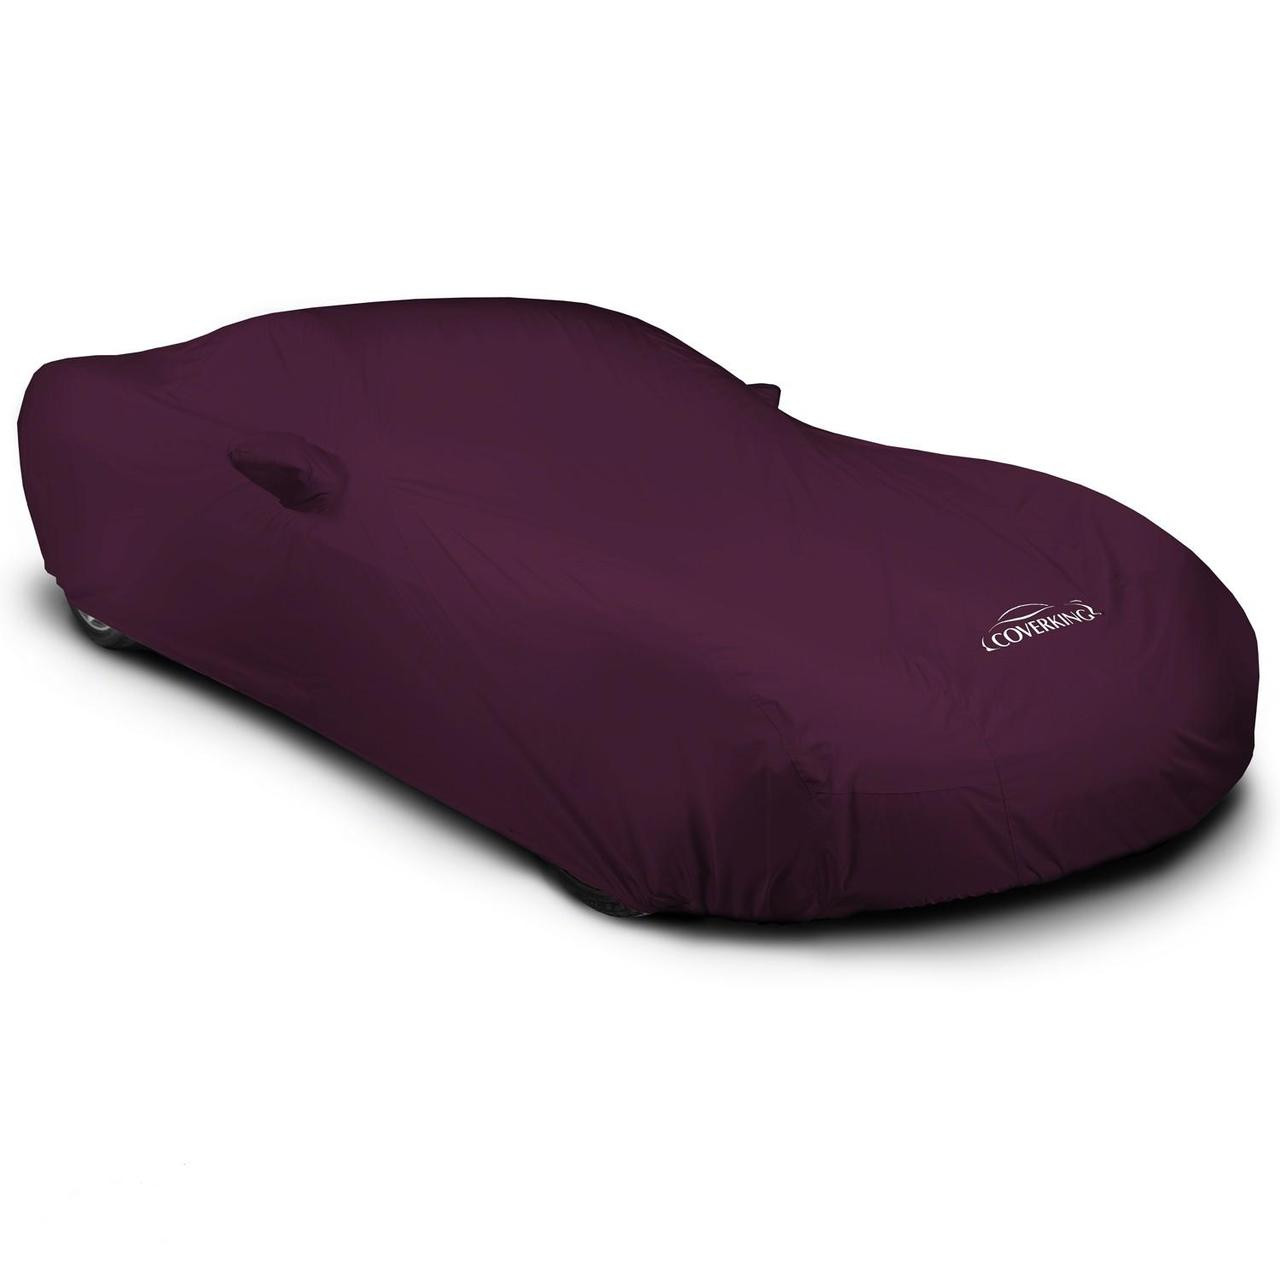 Corvette Outdoor Car Cover maroon